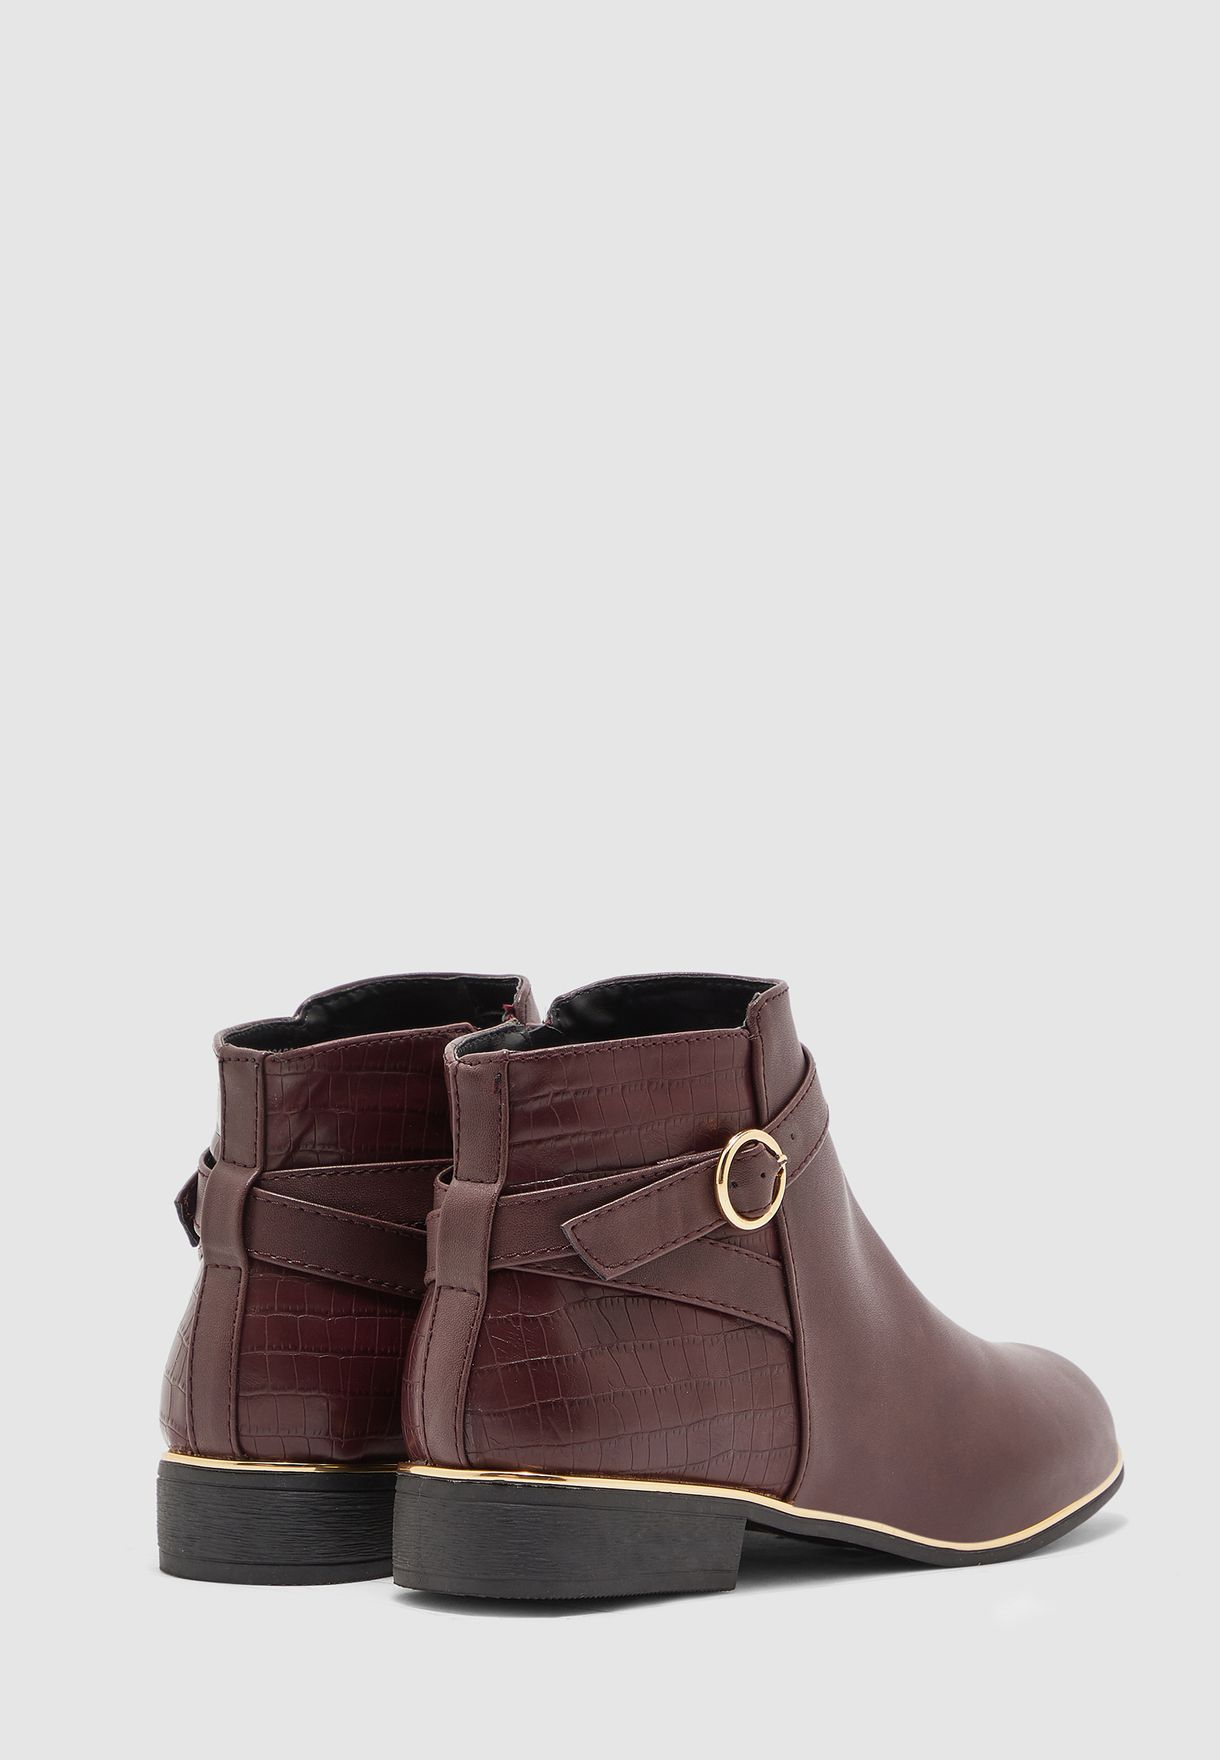 Dorothy Perkins Wide Fit Mina Gold Tipped Jodphur Boot - Brand Shoes